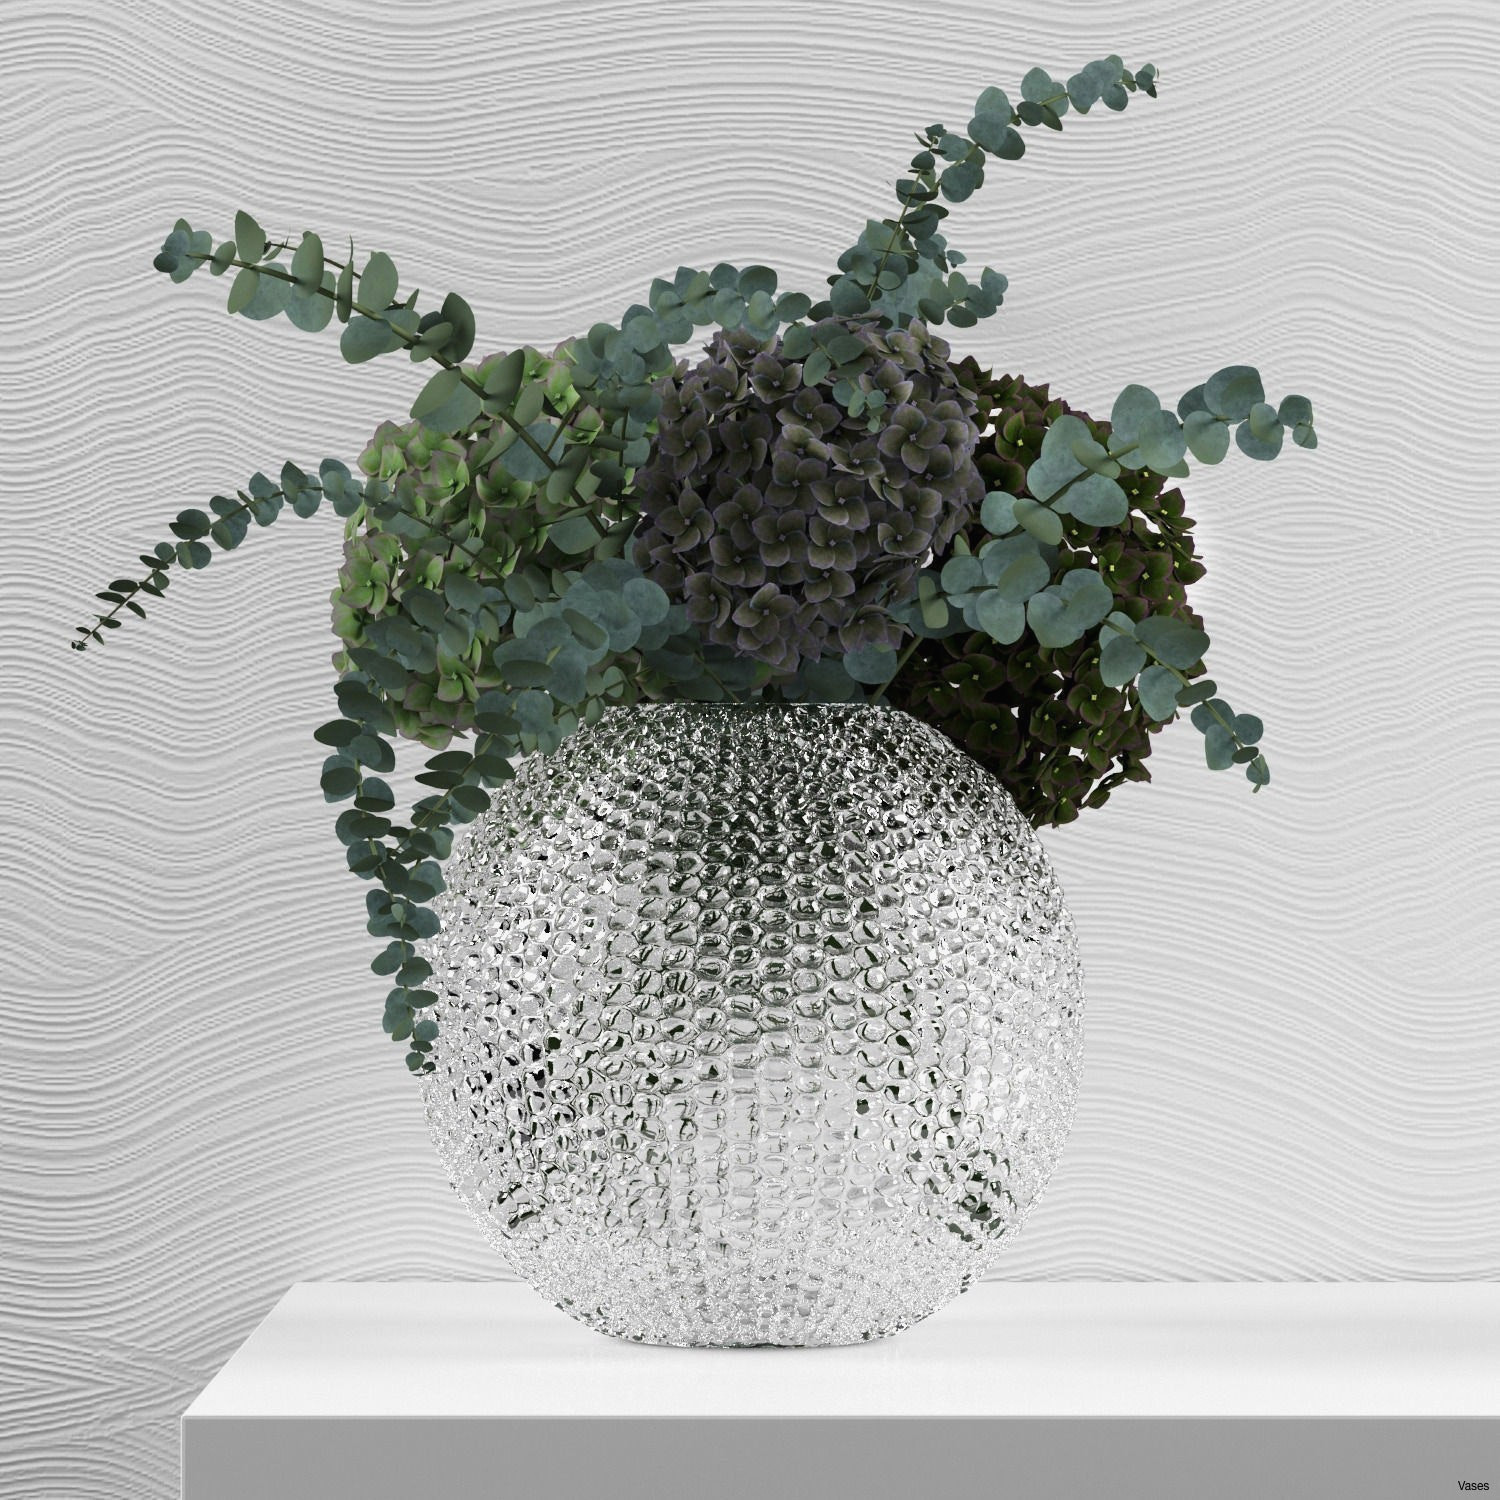 18 attractive Silver Bud Vases Bulk 2021 free download silver bud vases bulk of bud vases in bulk vase and cellar image avorcor com throughout s max new vases in bulk awesome h bud vase flower